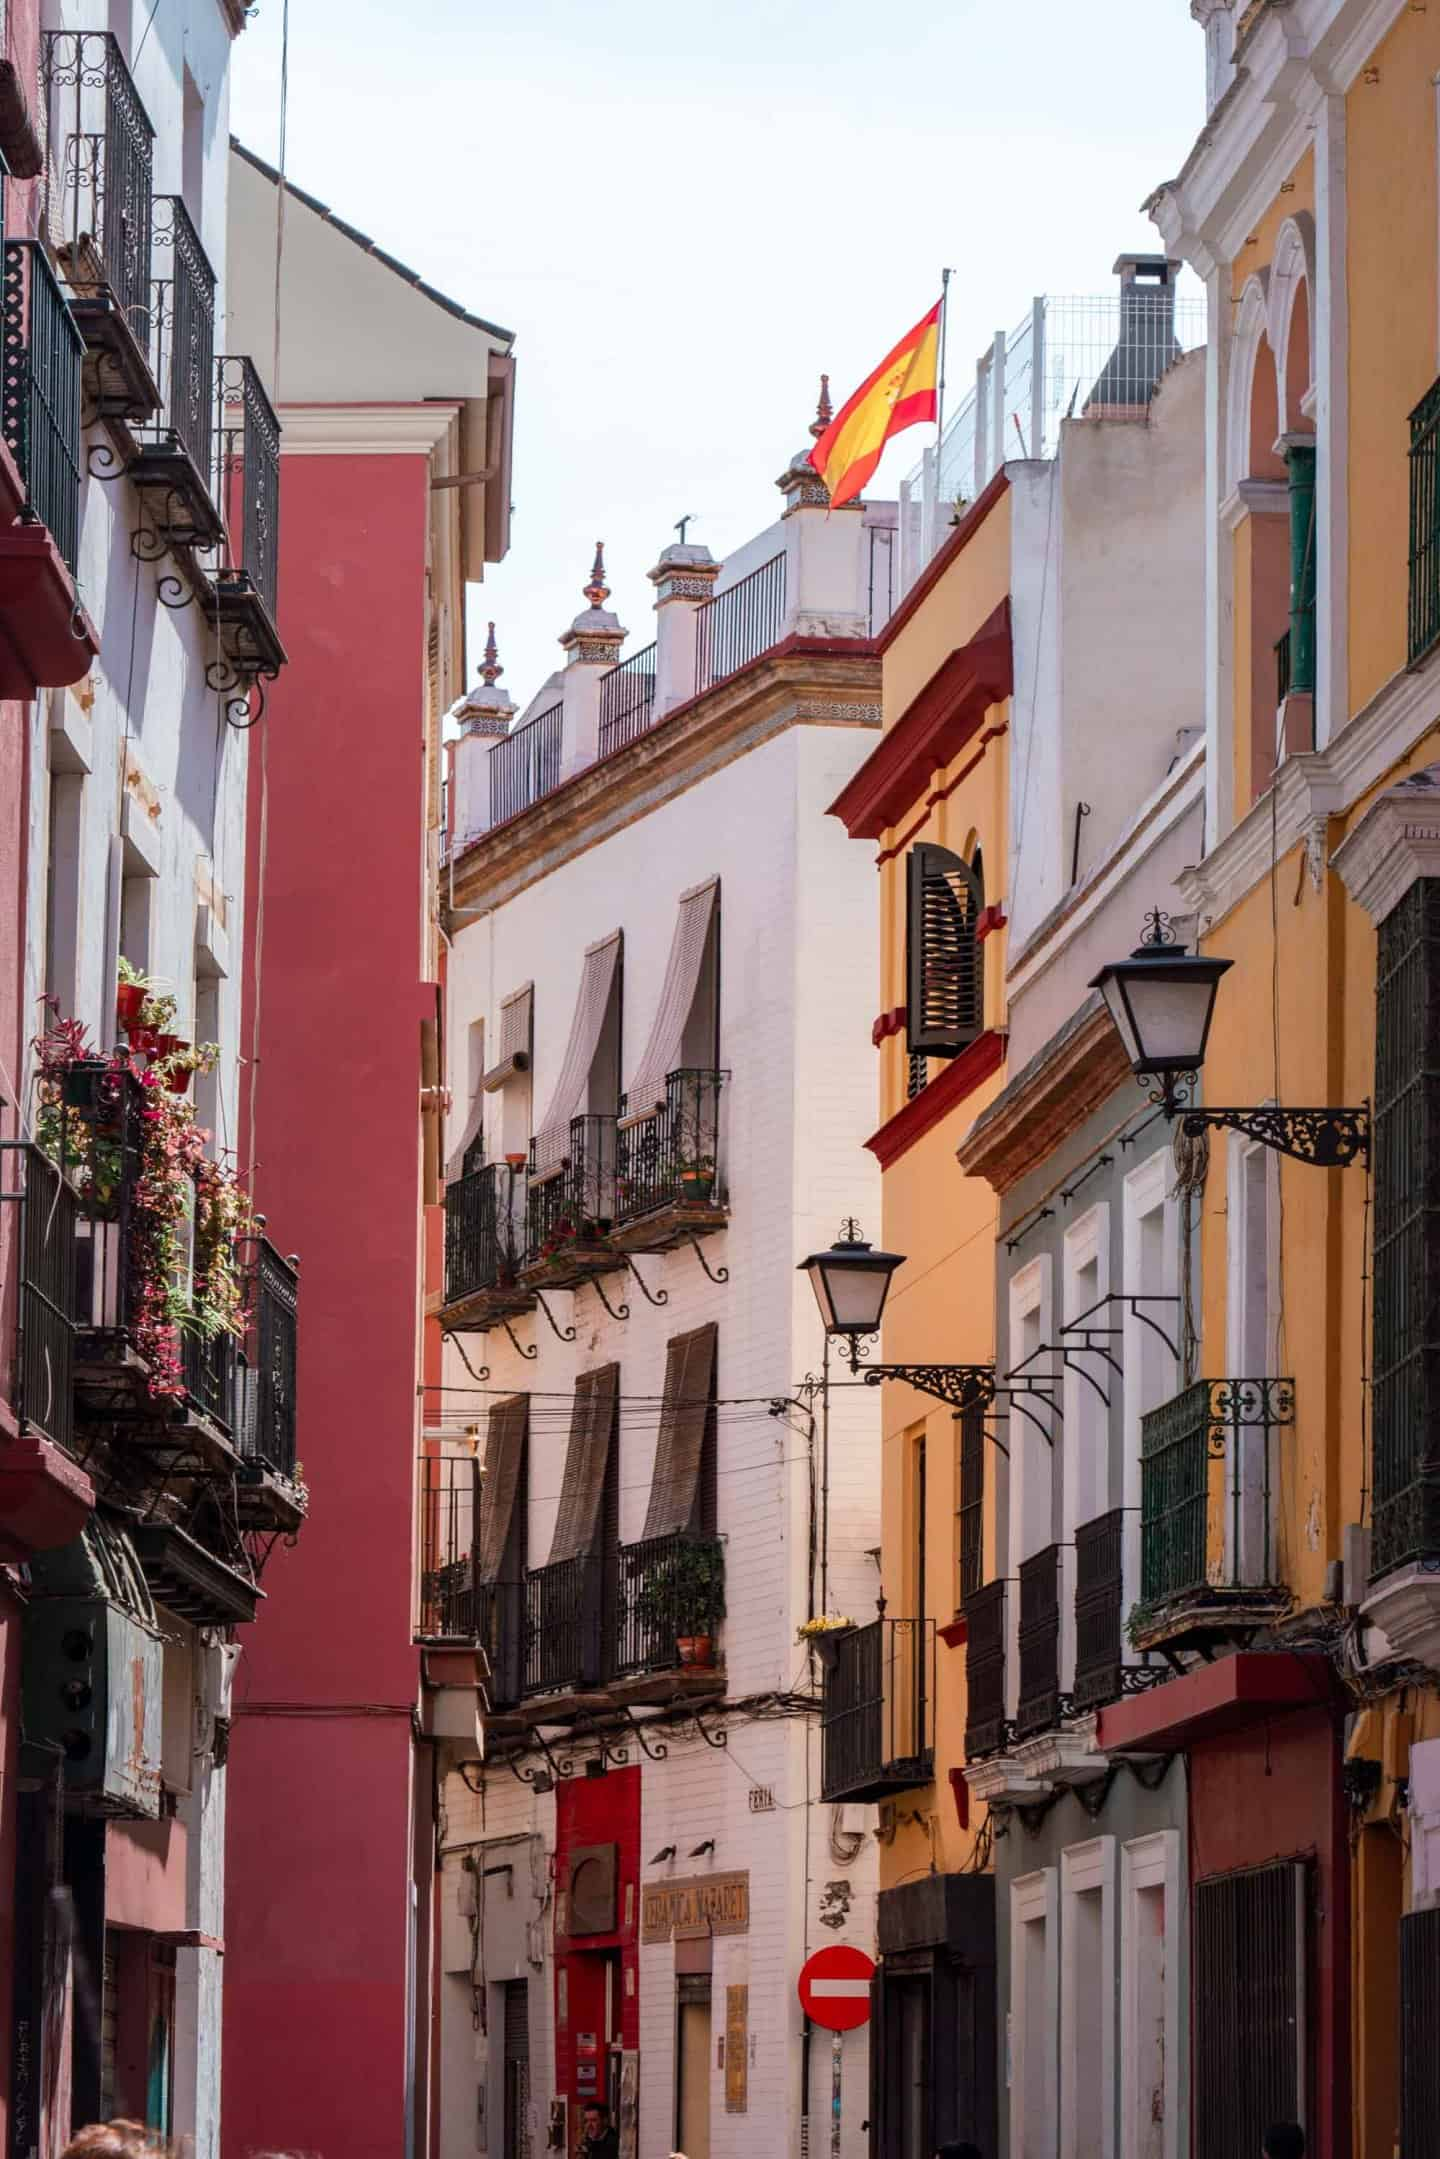 Red, white and yellow buildings at Plaza de Monte Sión Seville